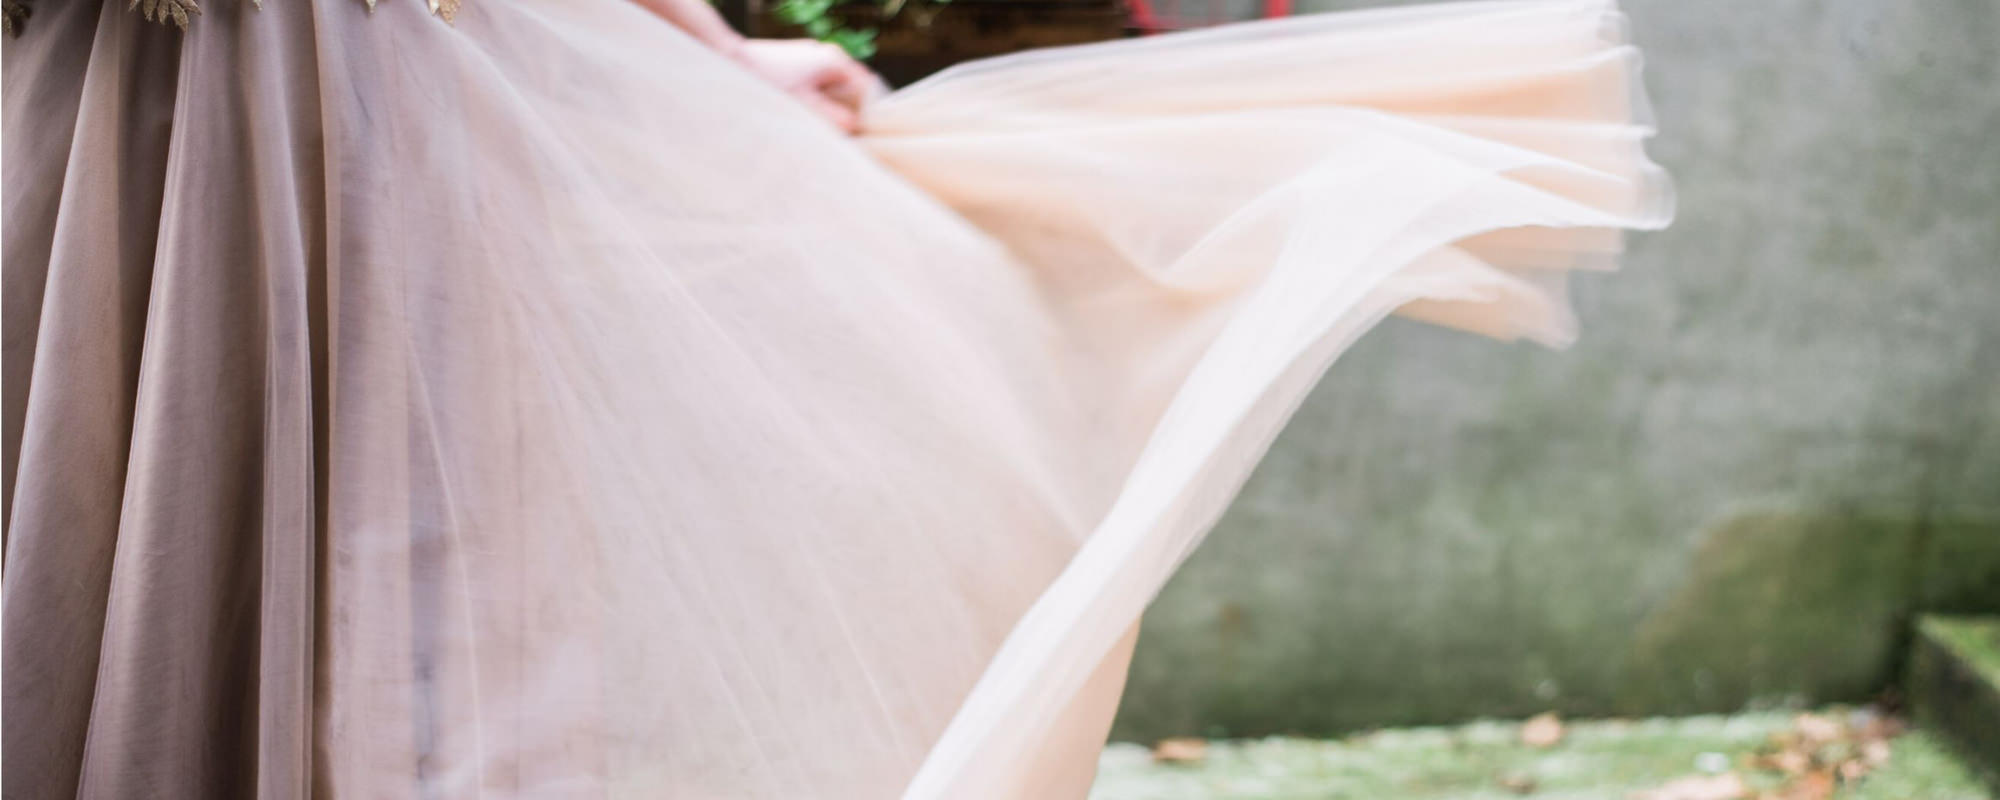 10 wedding planning tasks to do whilst on lockdown